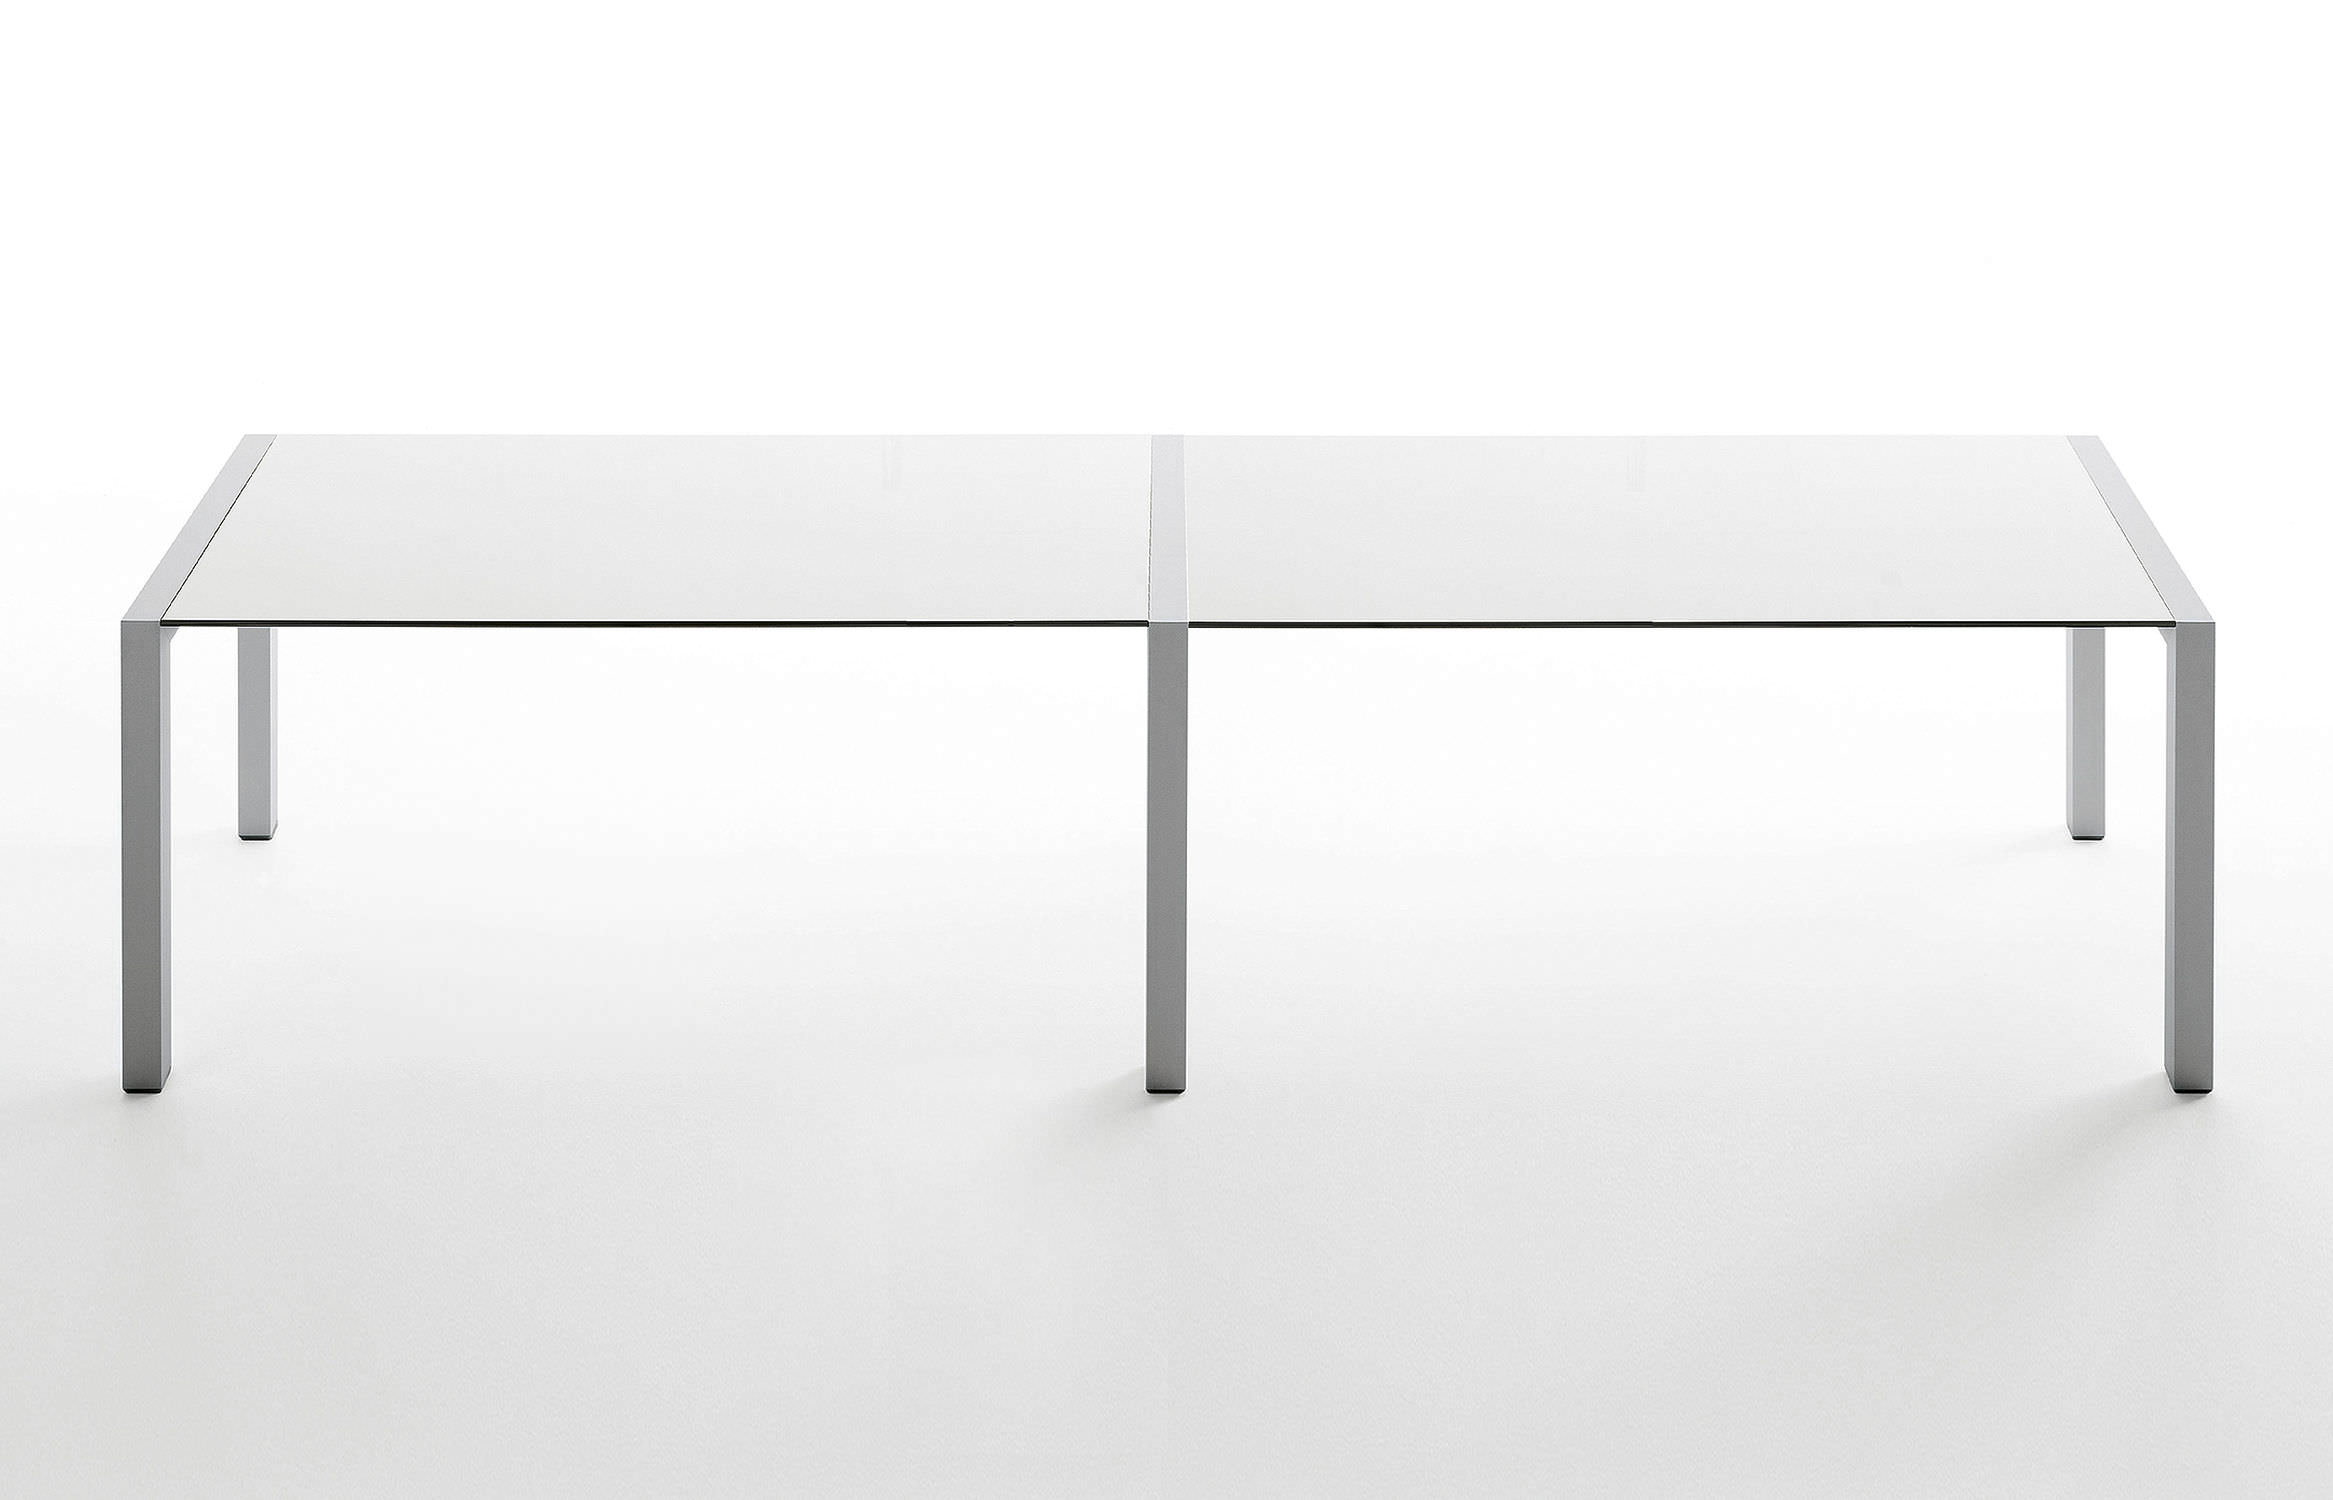 Contemporary boardroom table glass laminate rectangular